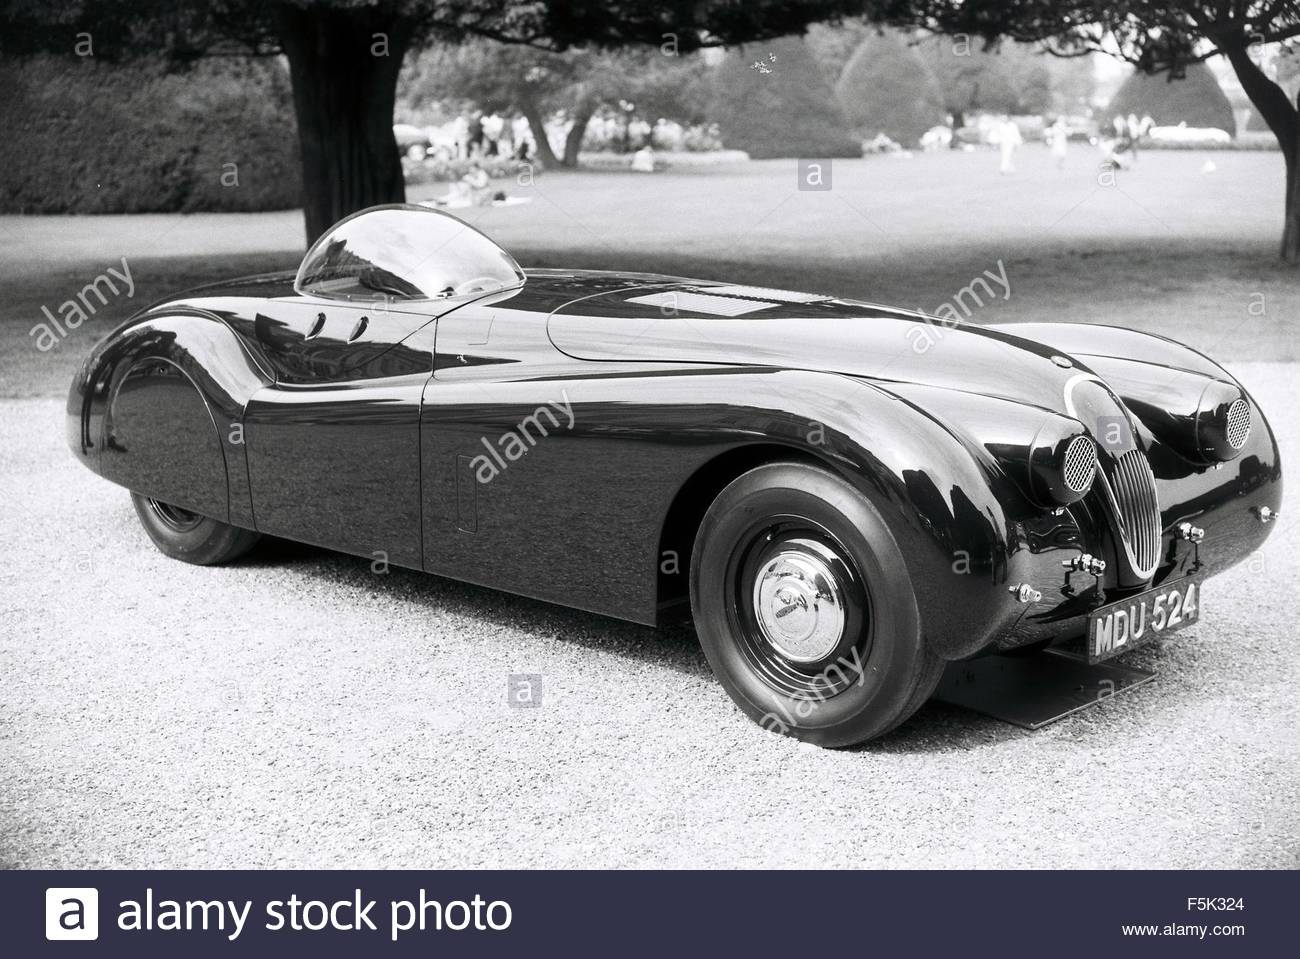 Jaguar Xk120 Stock Photos Images Alamy 1953 Roadster For Sale Jabbeke At The Concours Of Elegance Hampton Court Uk